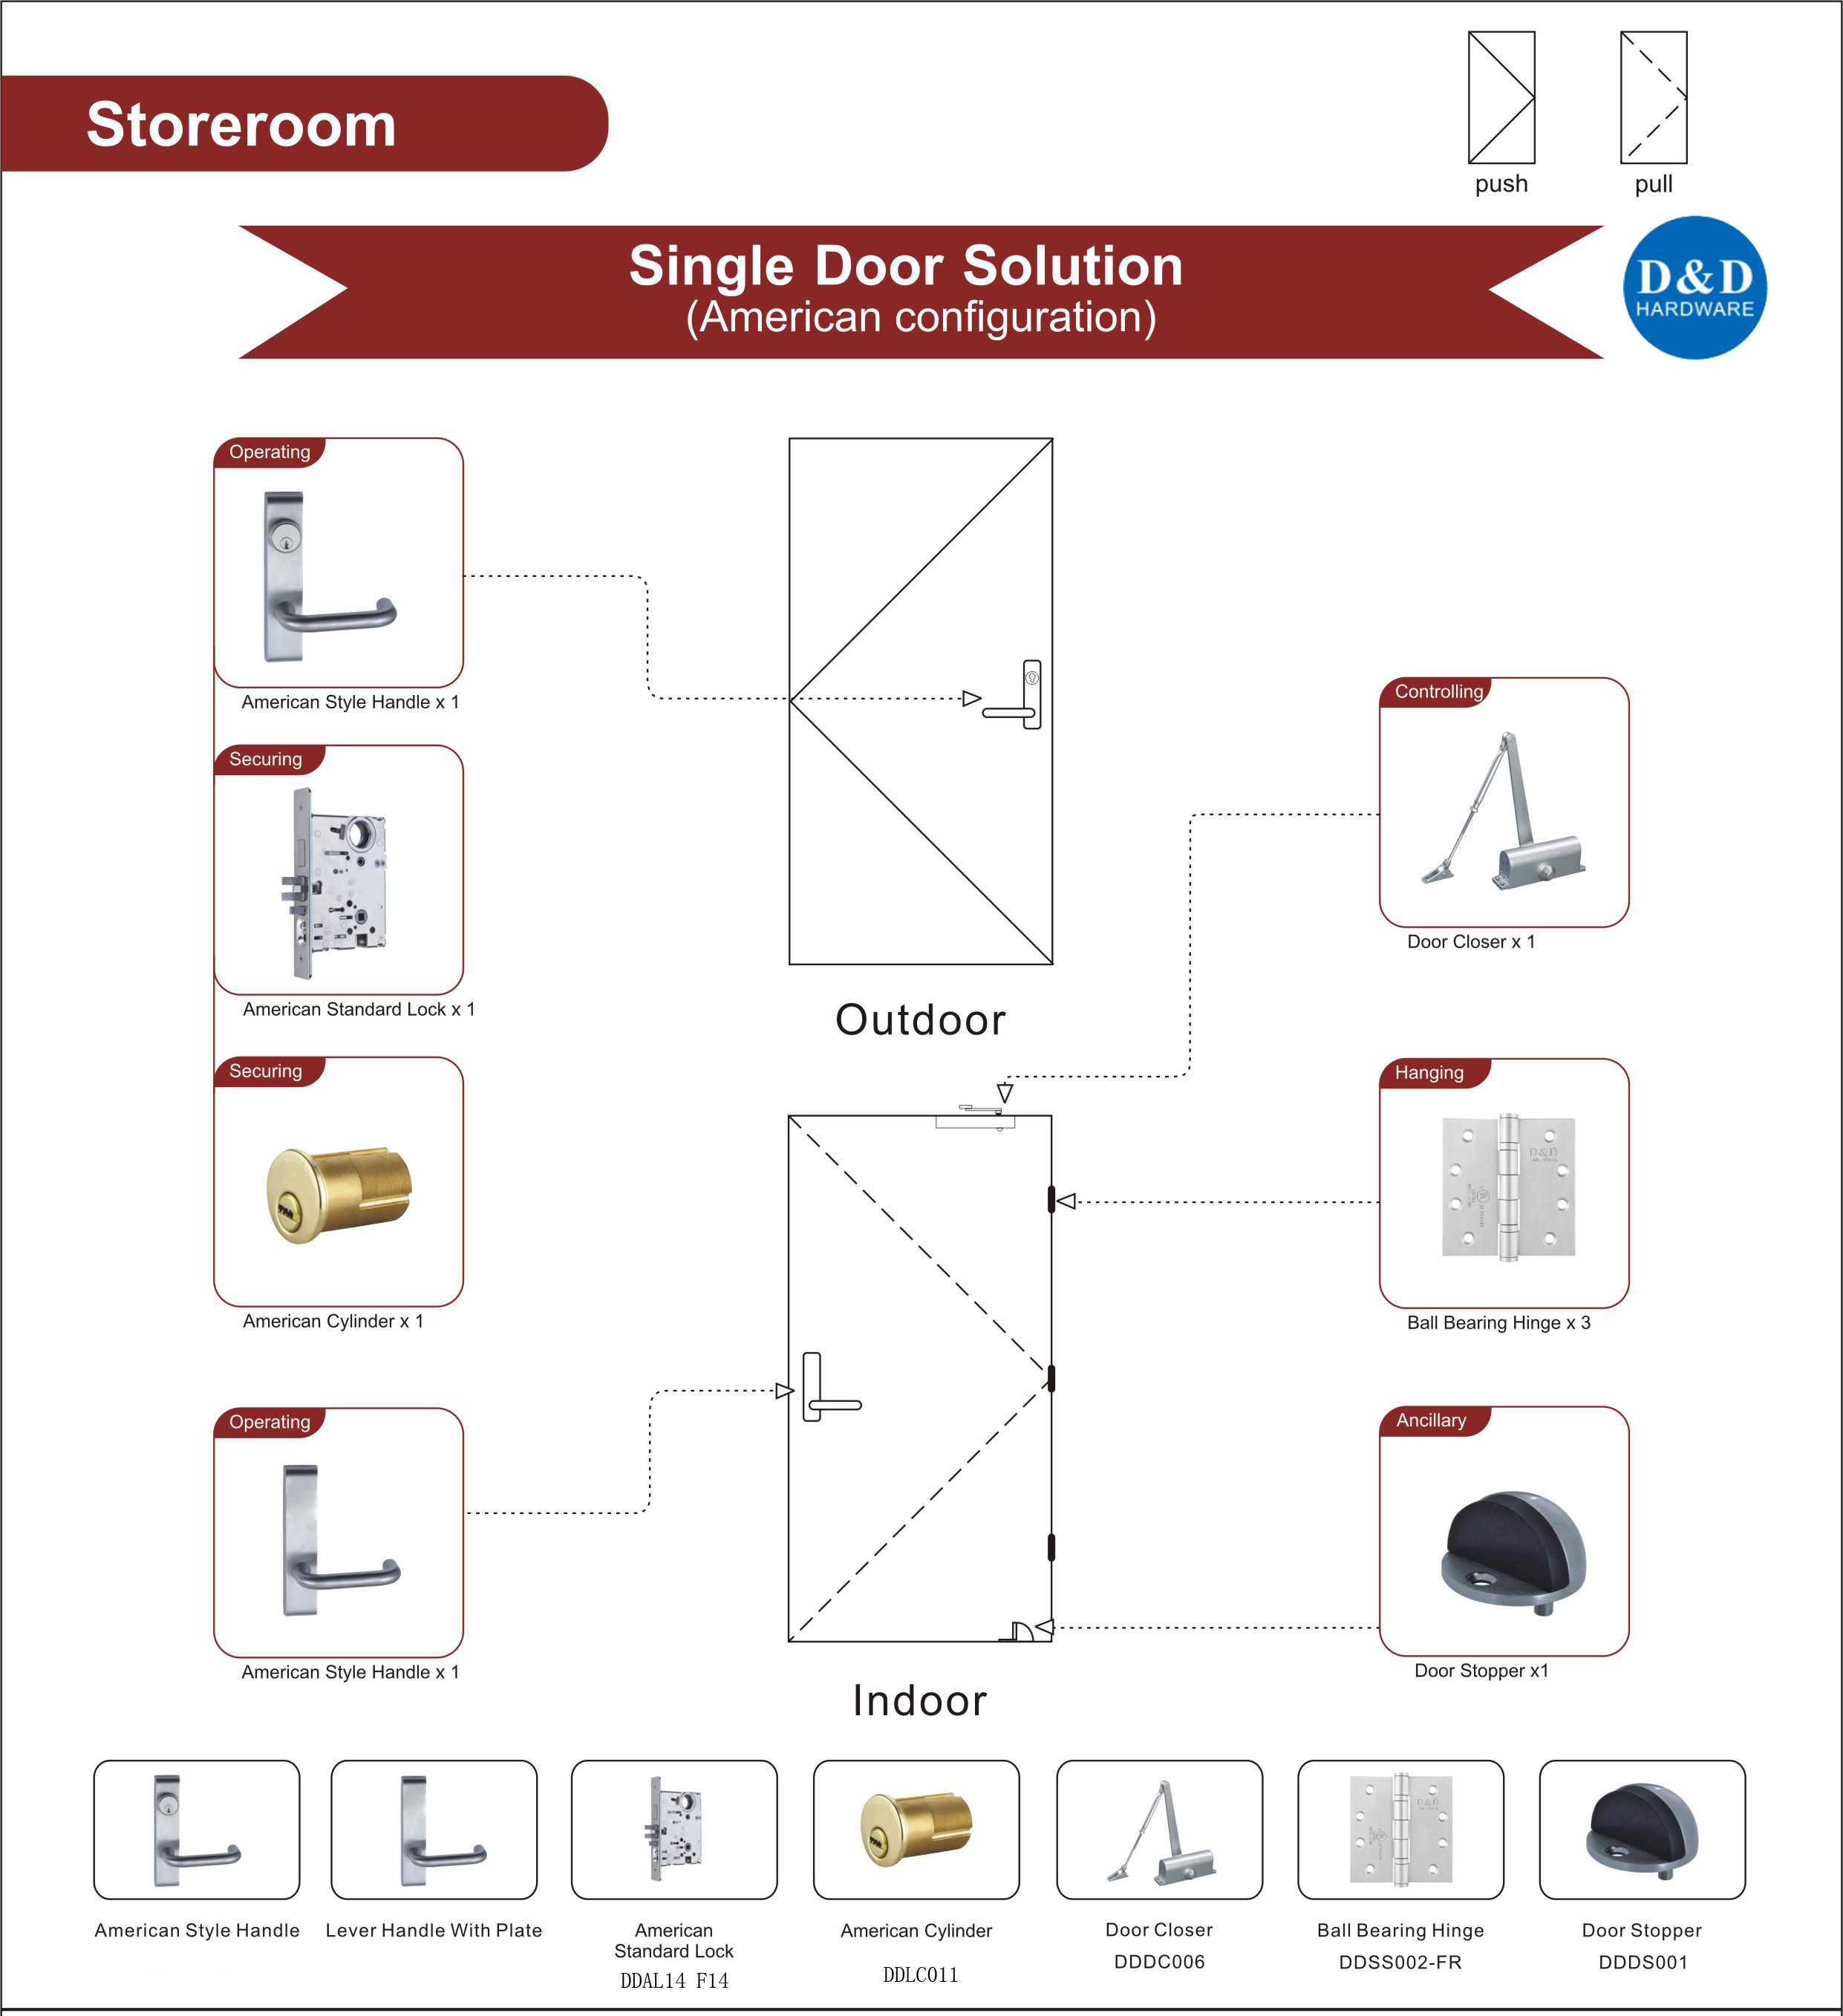 Fire Rated Steel Door Hardware for Storeroom Single Door